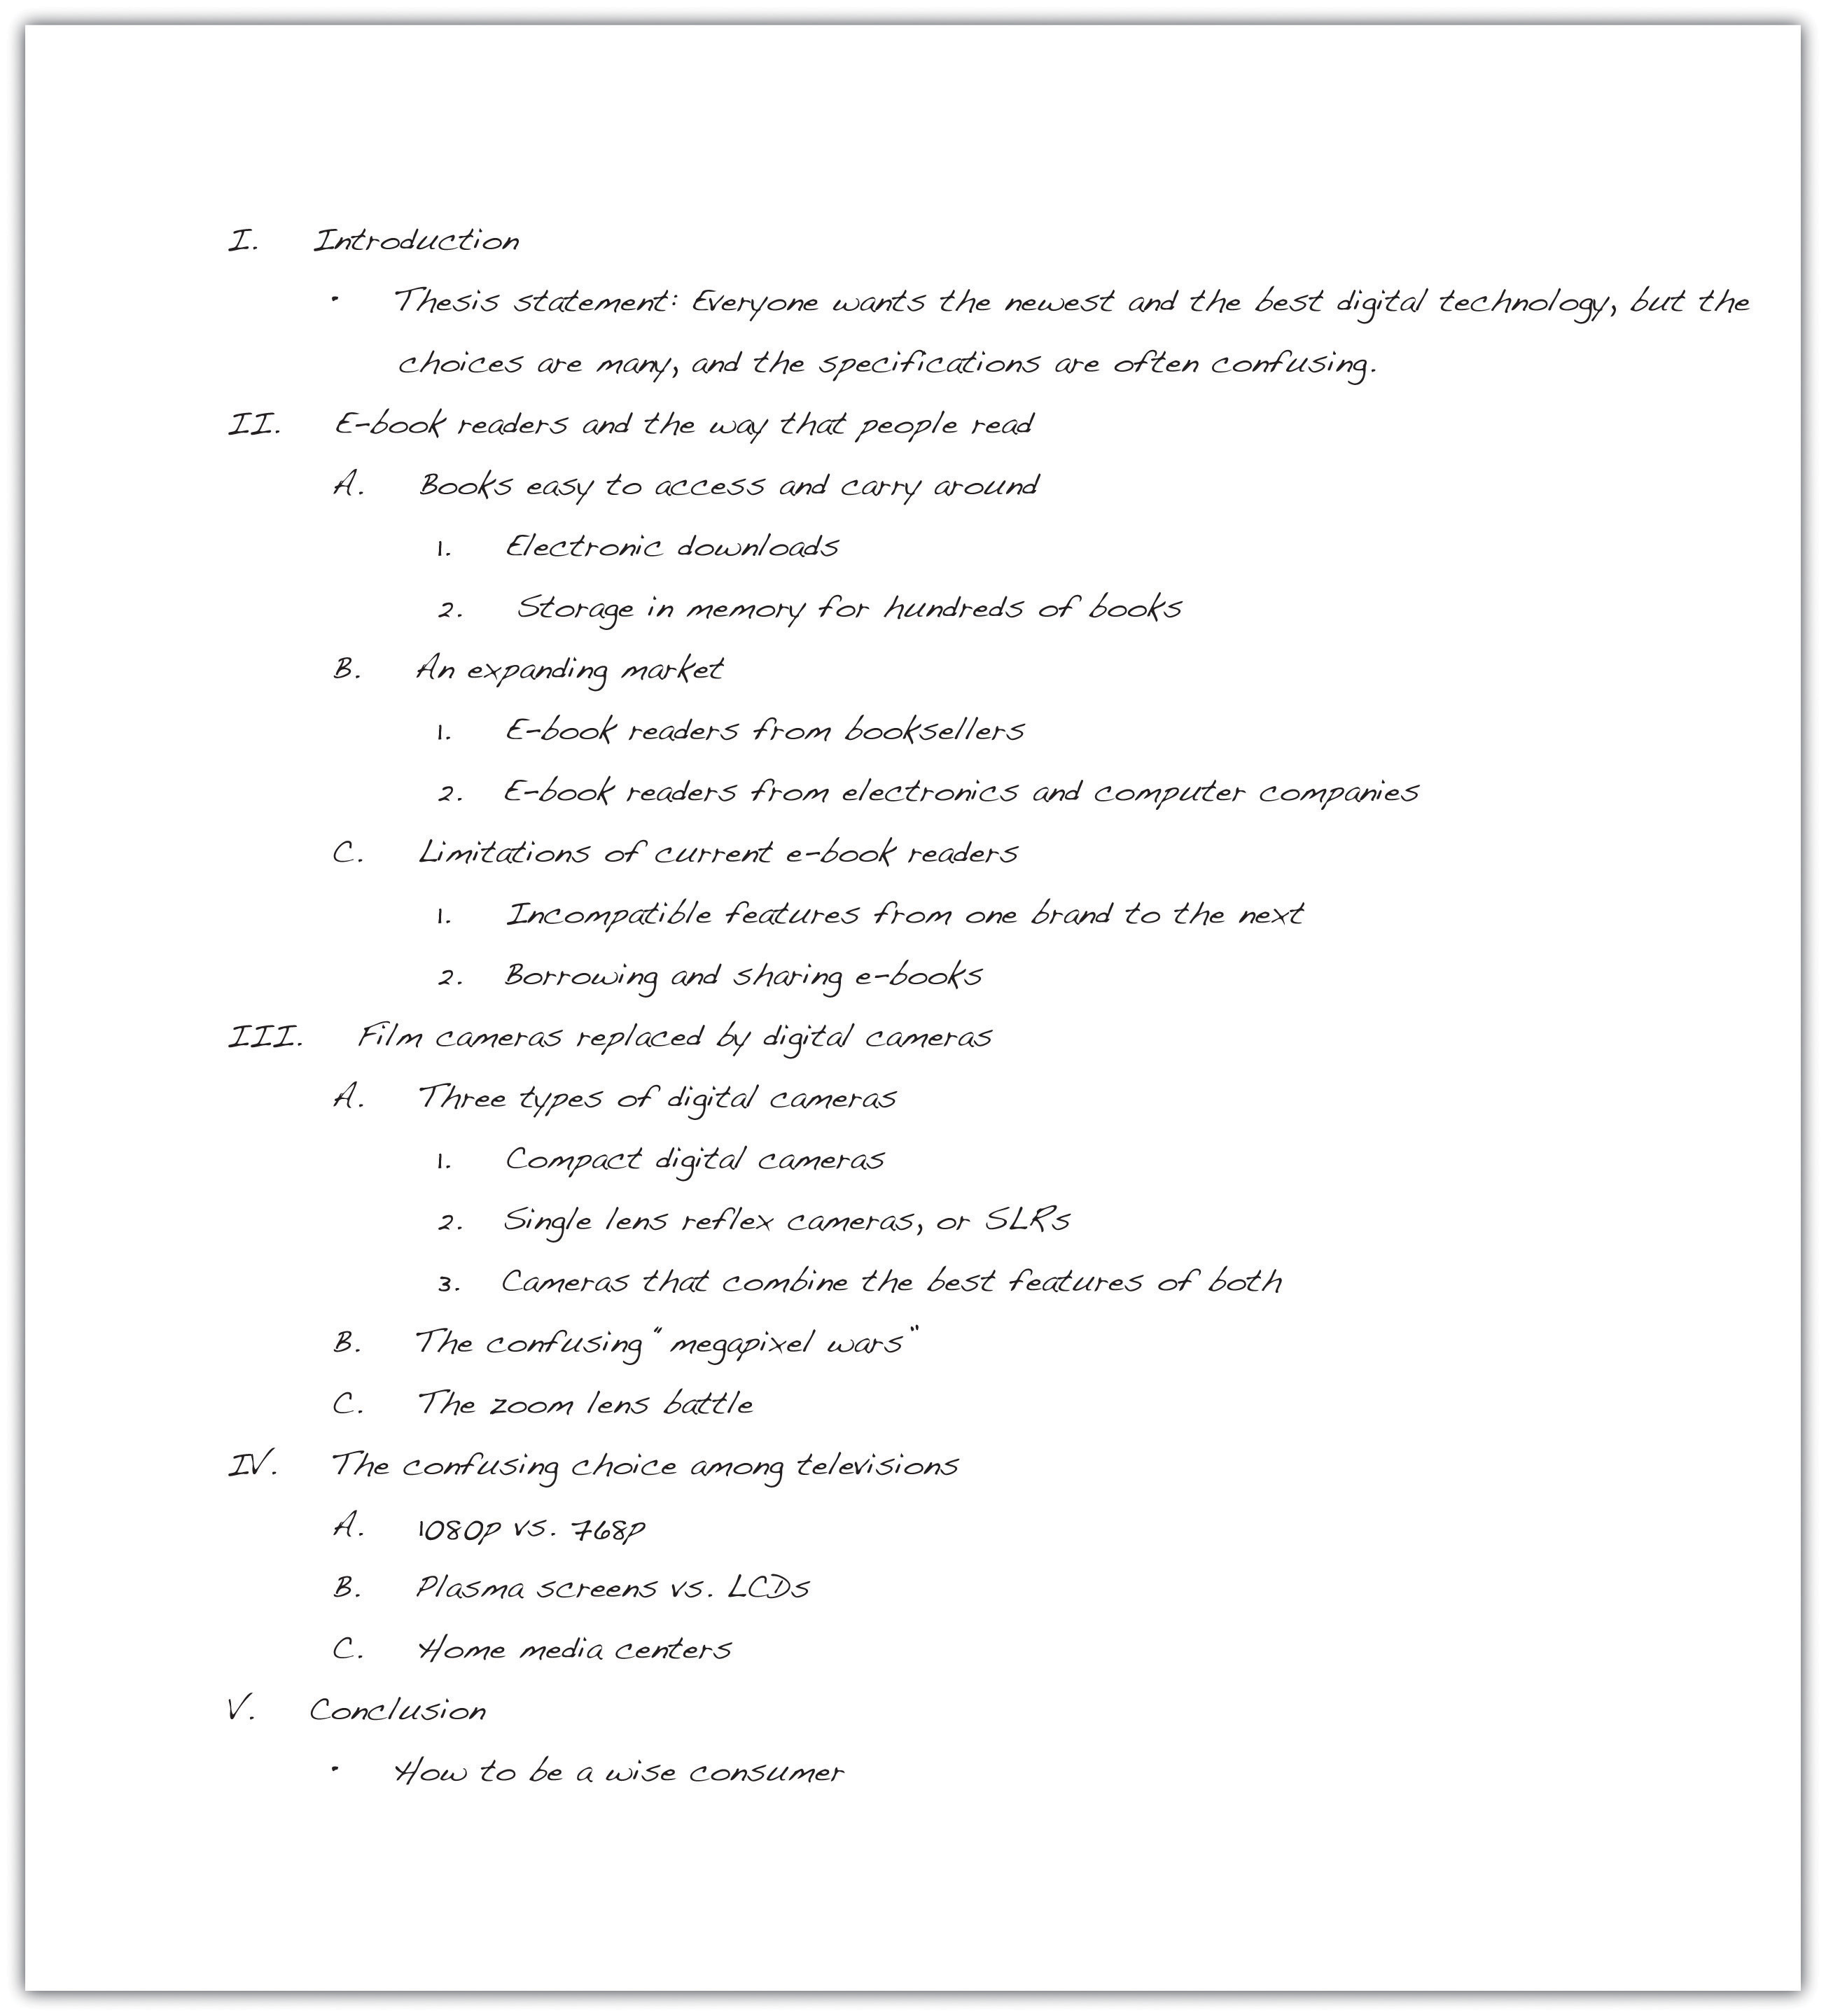 outline structure for an essay Essay outline templates are the outline structures to help writing an essay templates help you to organize your thought process in a particular way.